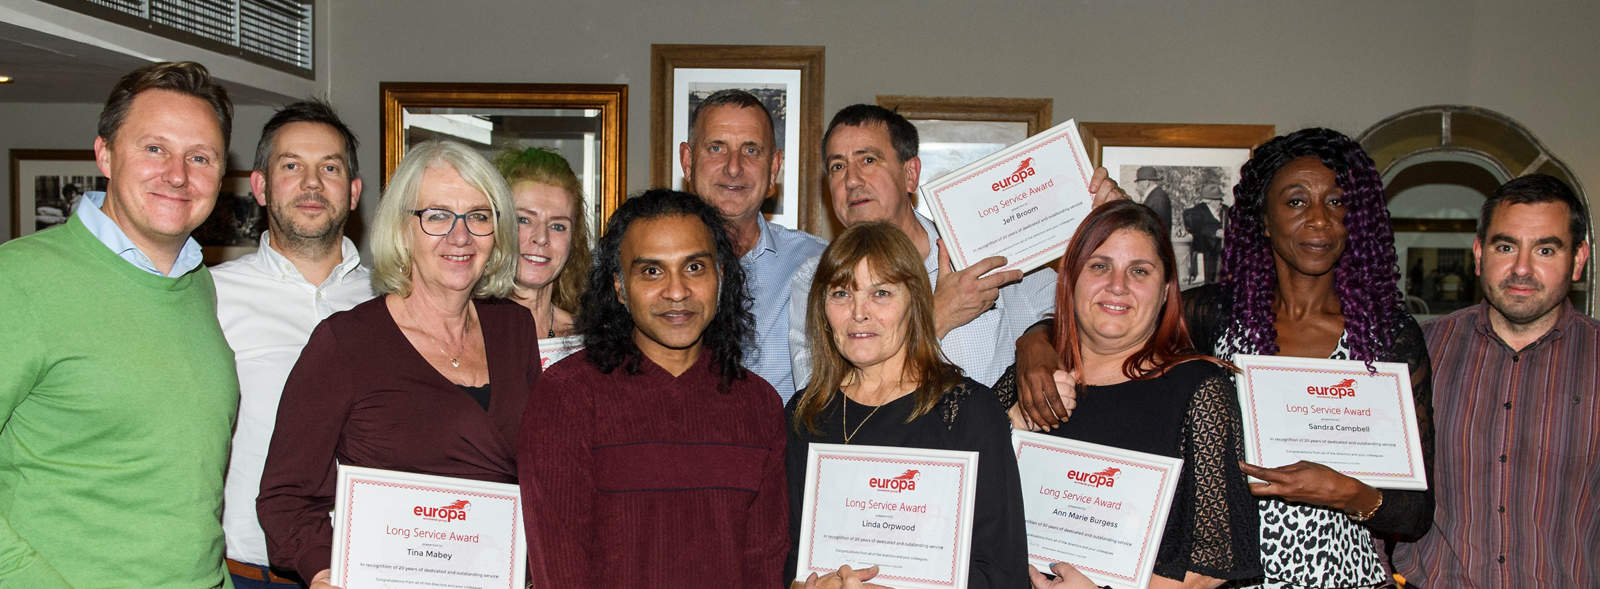 Long Service Awards are celebrated at Europa Worldwide Group